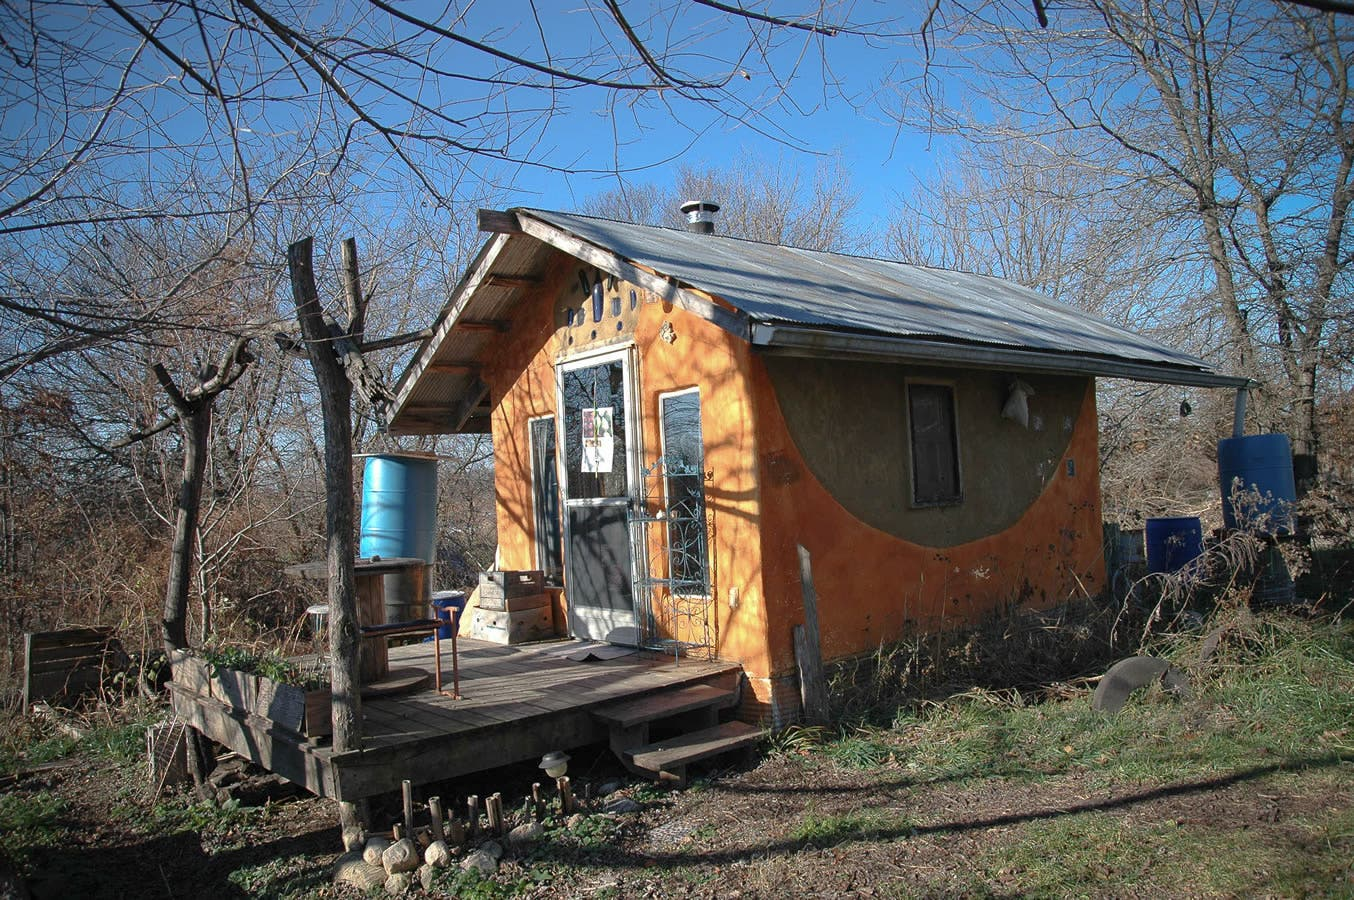 Top 7 Sources for Buying a Tiny Home Tiny House Blog